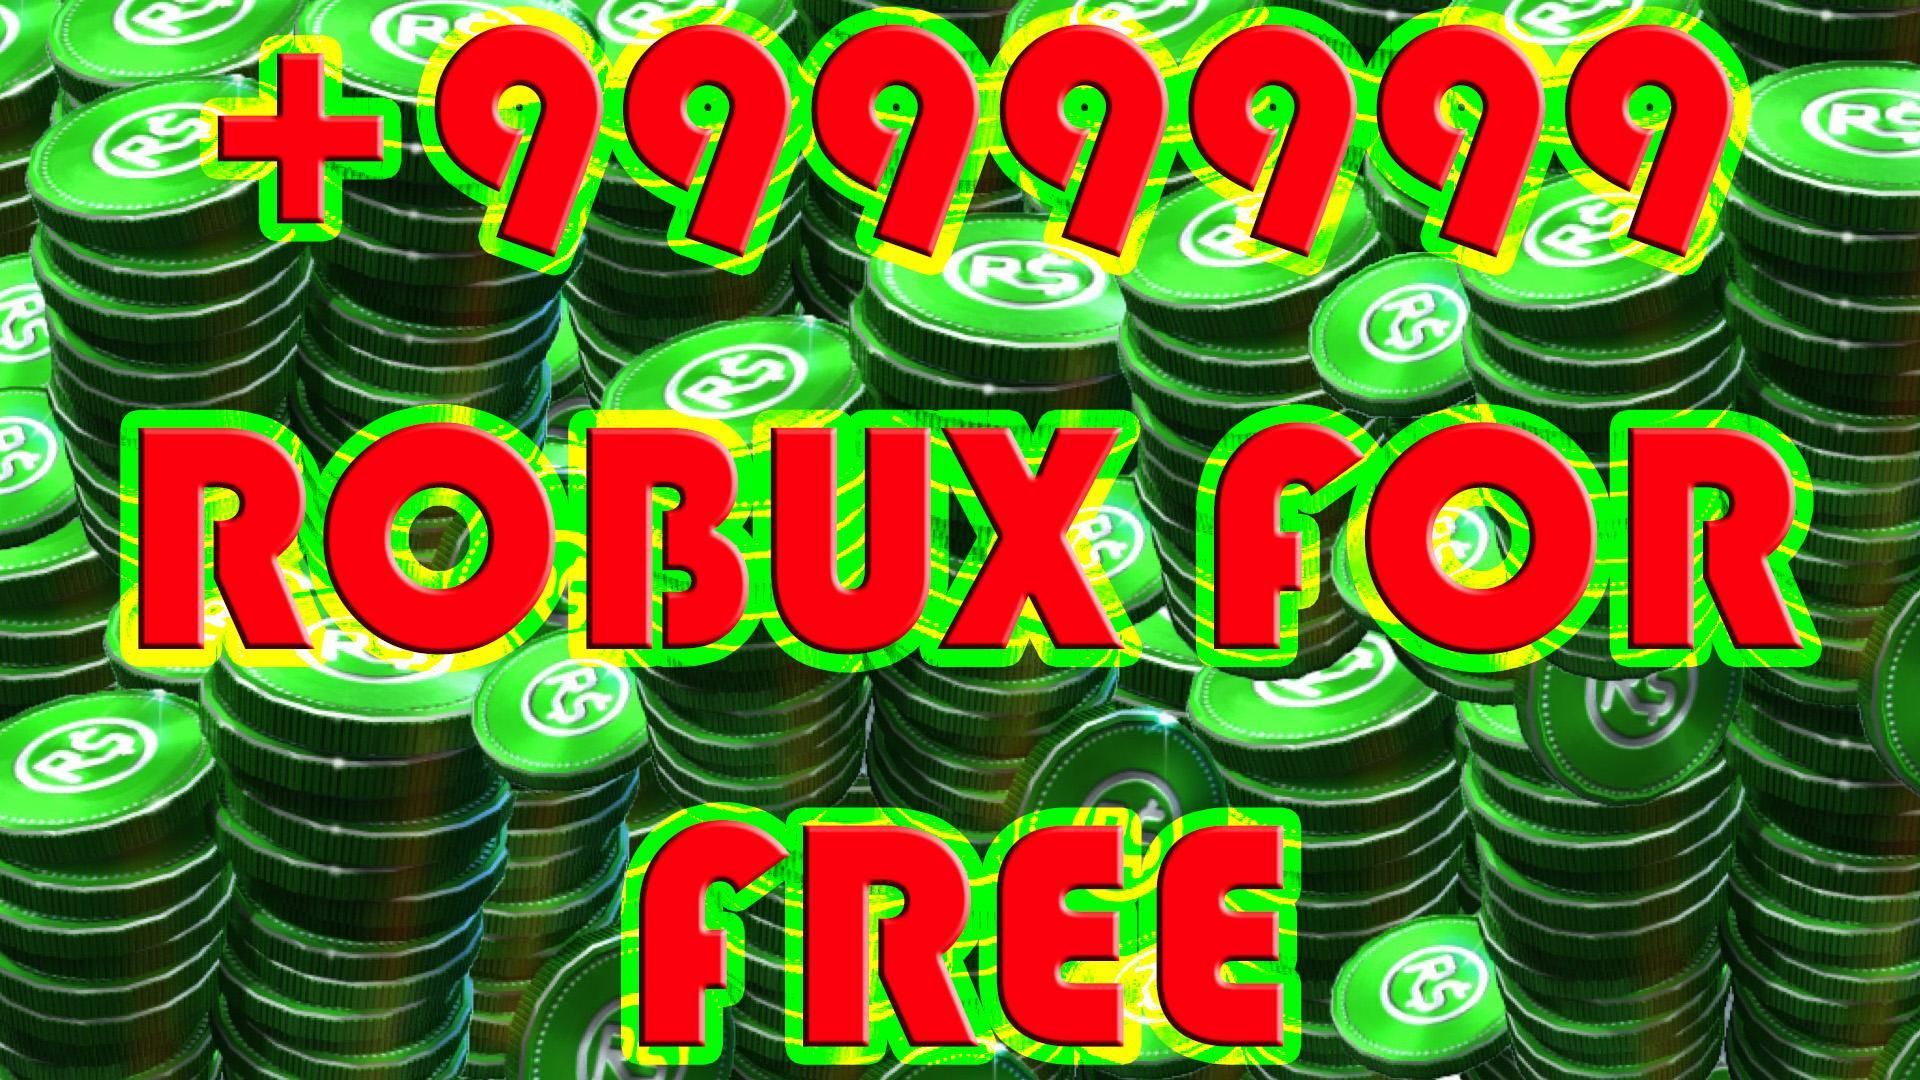 Get Free Robux For Free Robox Guide 2020 For Android Apk Download